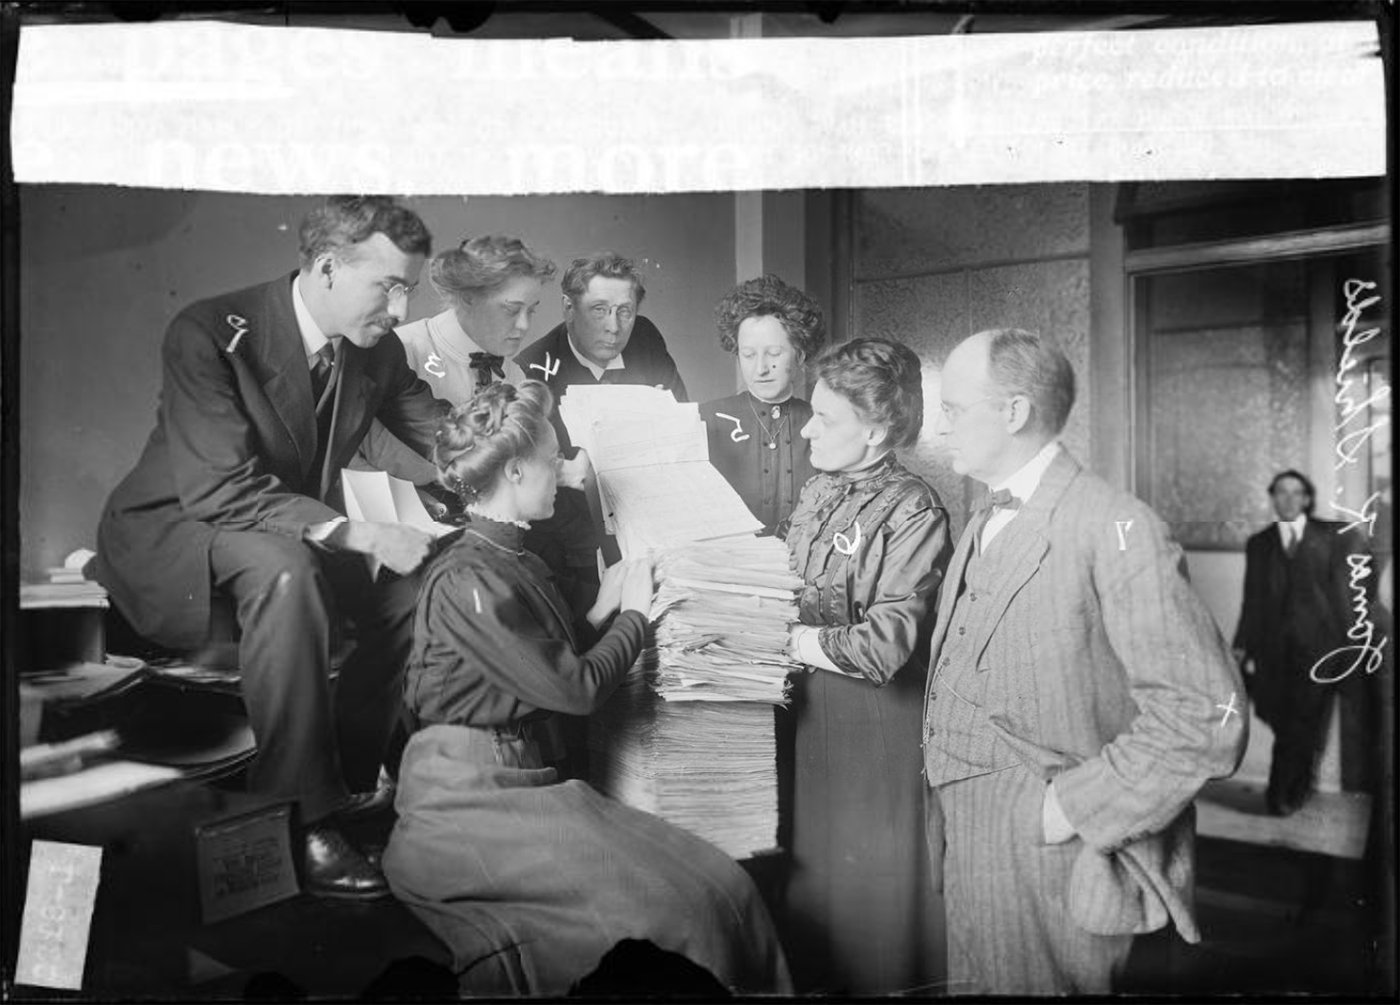 Members of the Anti-Saloon League in 1910 posing with a petition. Photo: Chicago Daily News, Chicago Historical Society